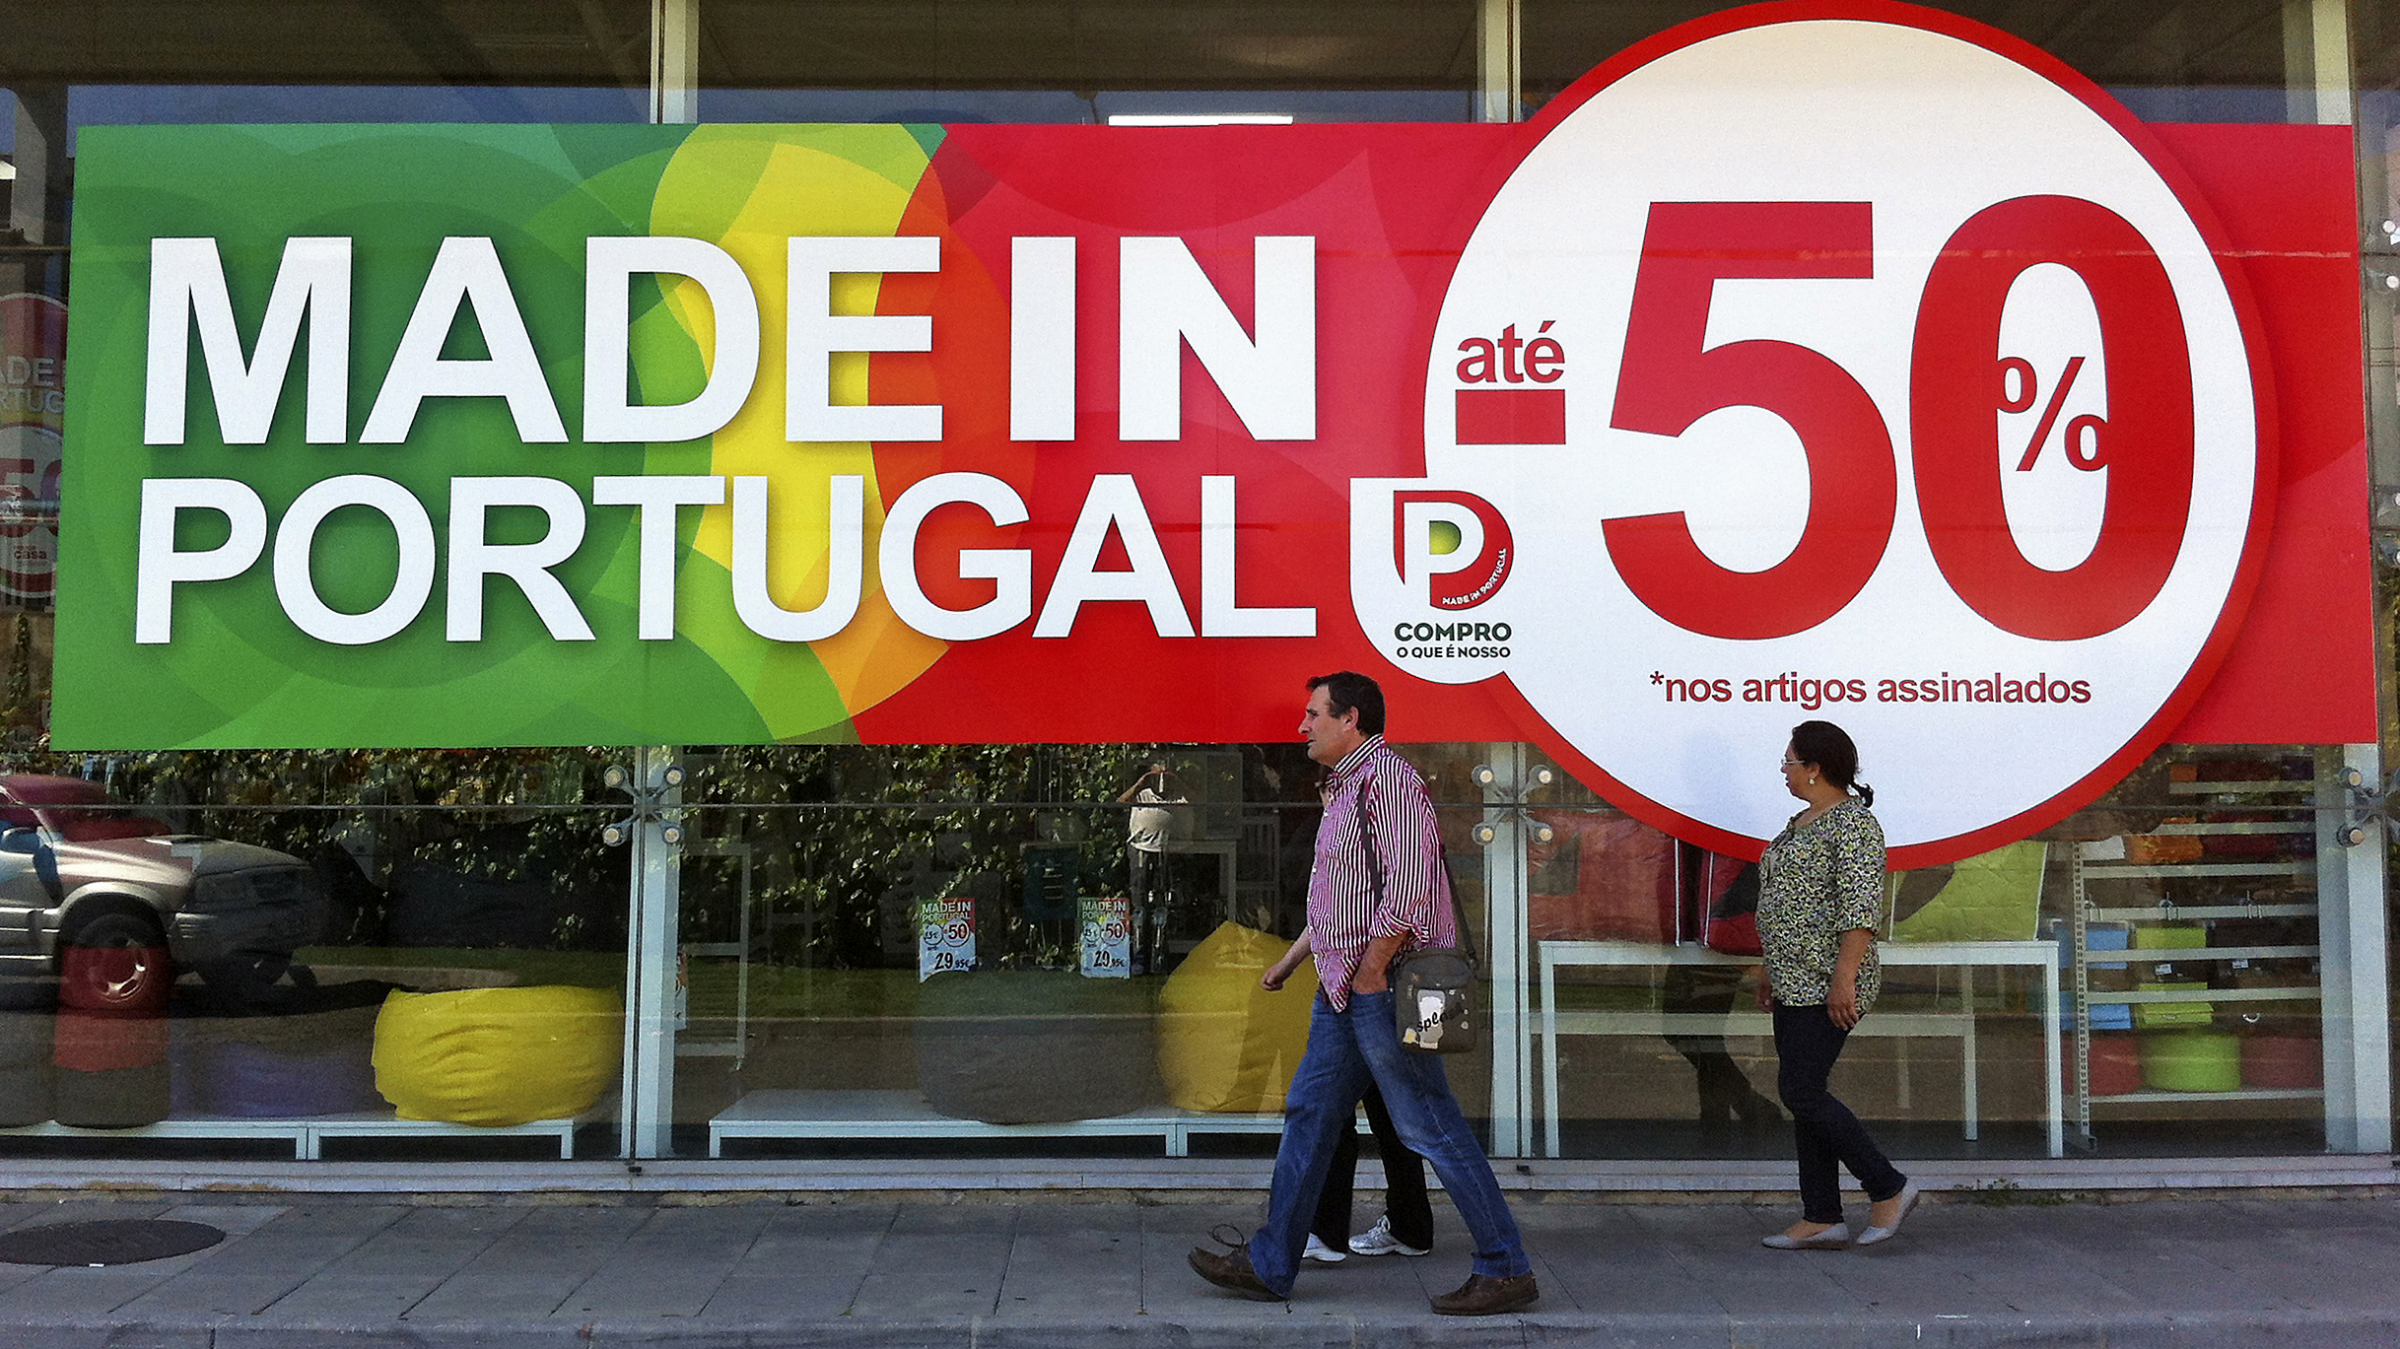 """People walk past a shop window with an announcement of discounts going up to 50 percent on goods made in Portugal, in Sintra April 23, 2013. Portugal's government plans to lower company tax rates """"significantly"""" as part of a wider plan of incentives to drag the economy out of its worst recession since the 1970s, Economy Minister Alvaro Santos Pereira said on Tuesday. REUTERS/Jose Manuel Ribeiro (PORTUGAL - Tags: POLITICS BUSINESS)"""